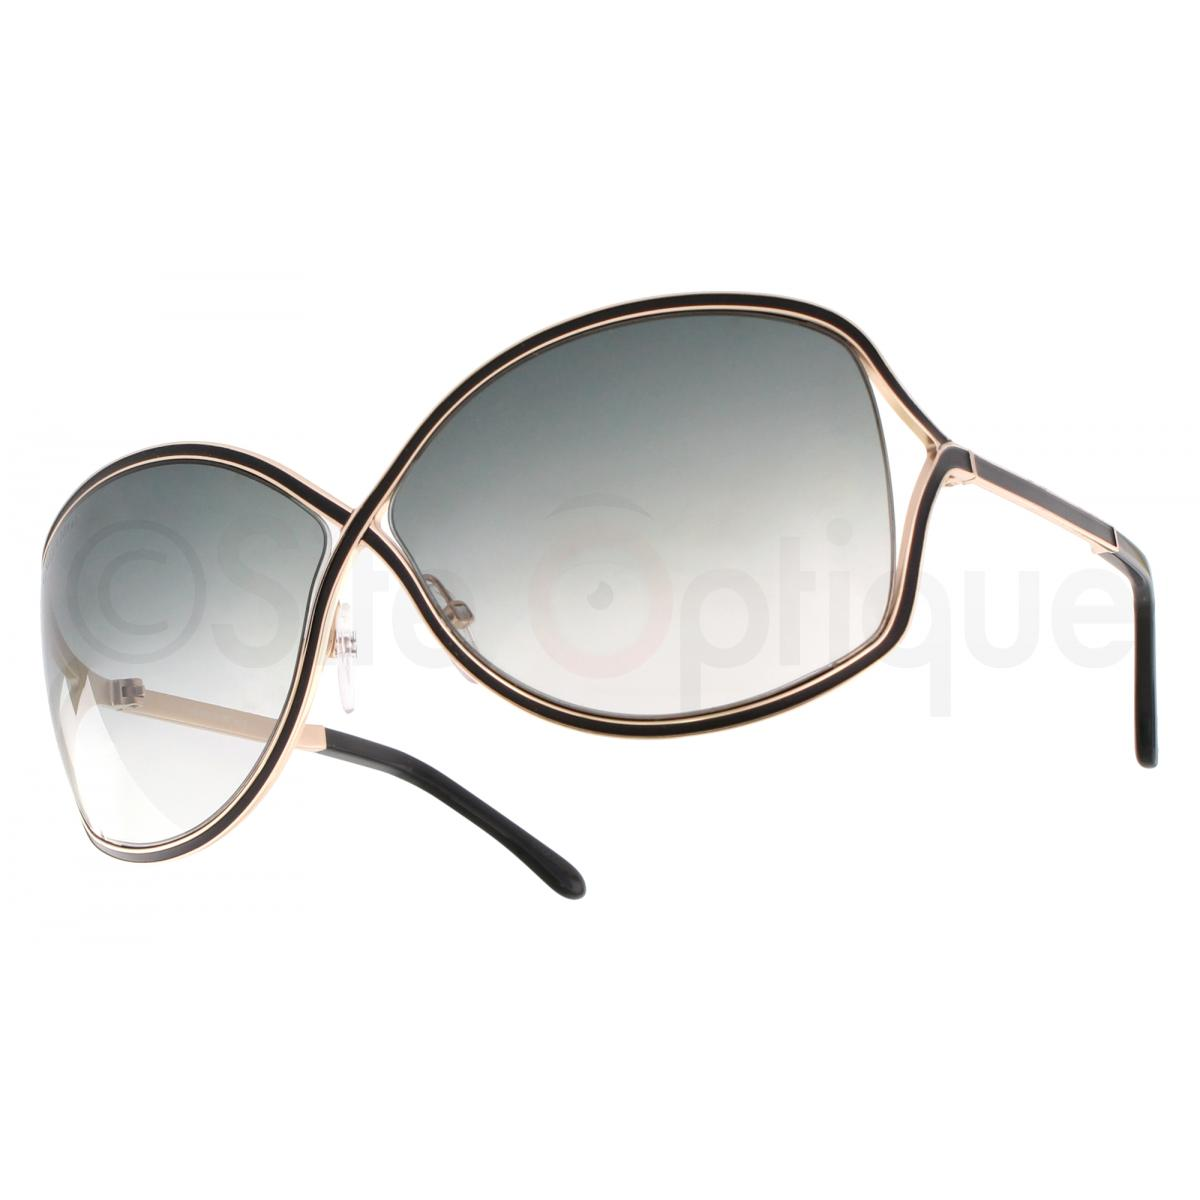 07e127e7d1de7 Tom Ford - FT 179 – Site optique